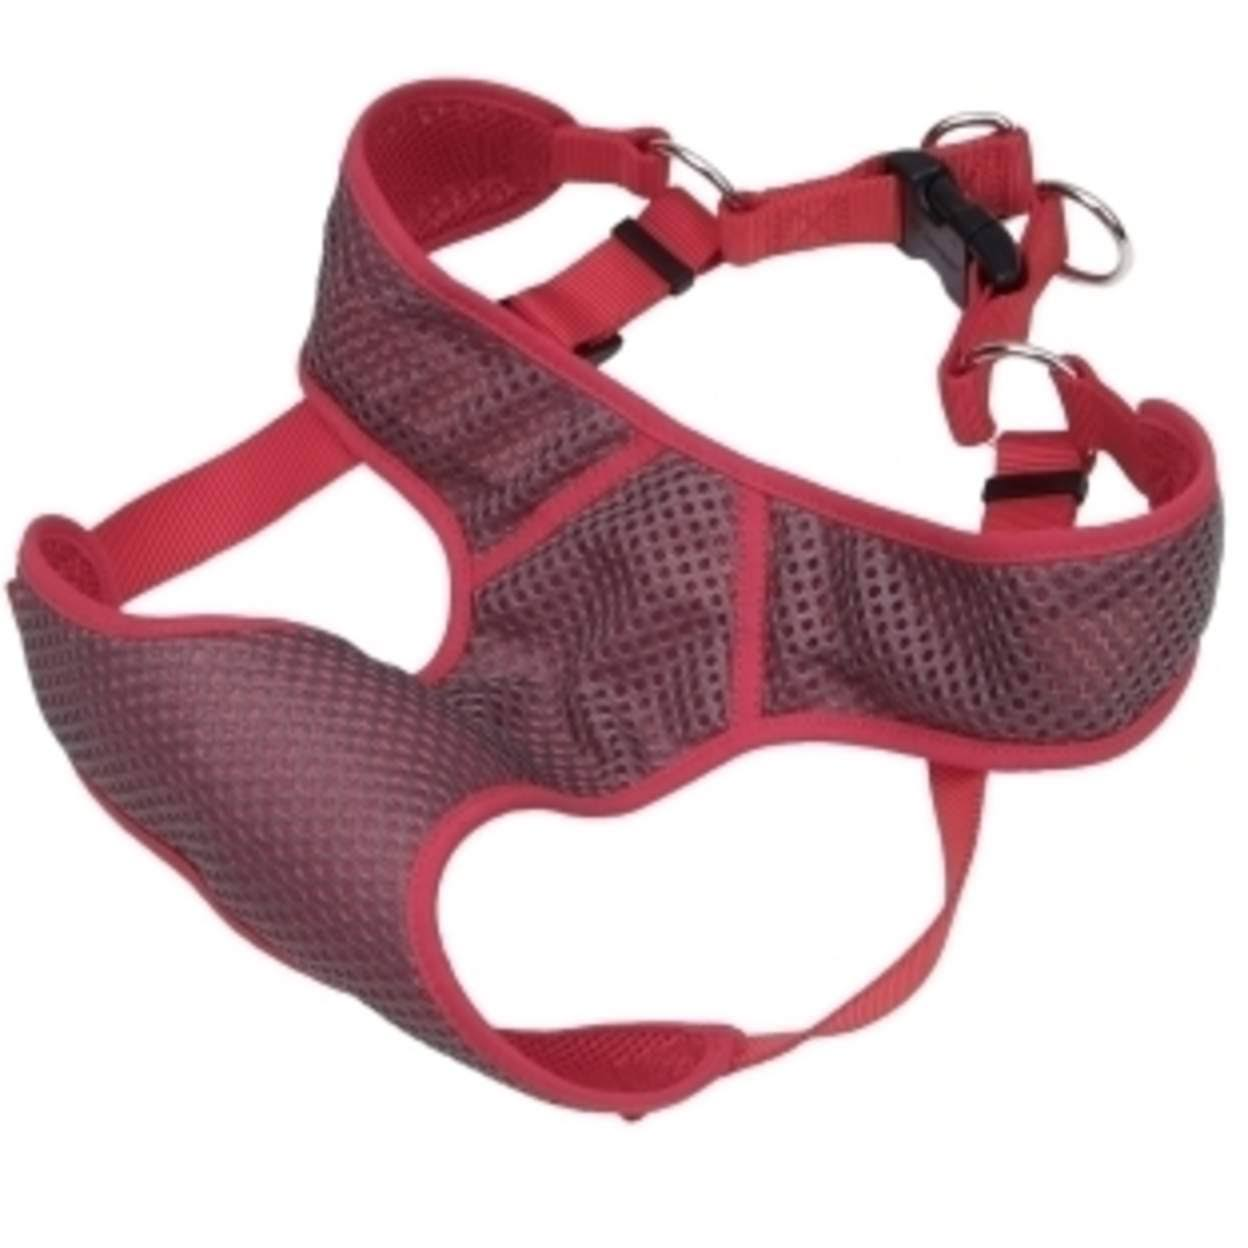 Coastal Pet Comfort Soft Sport Wrap Dog Harness - Medium, Red